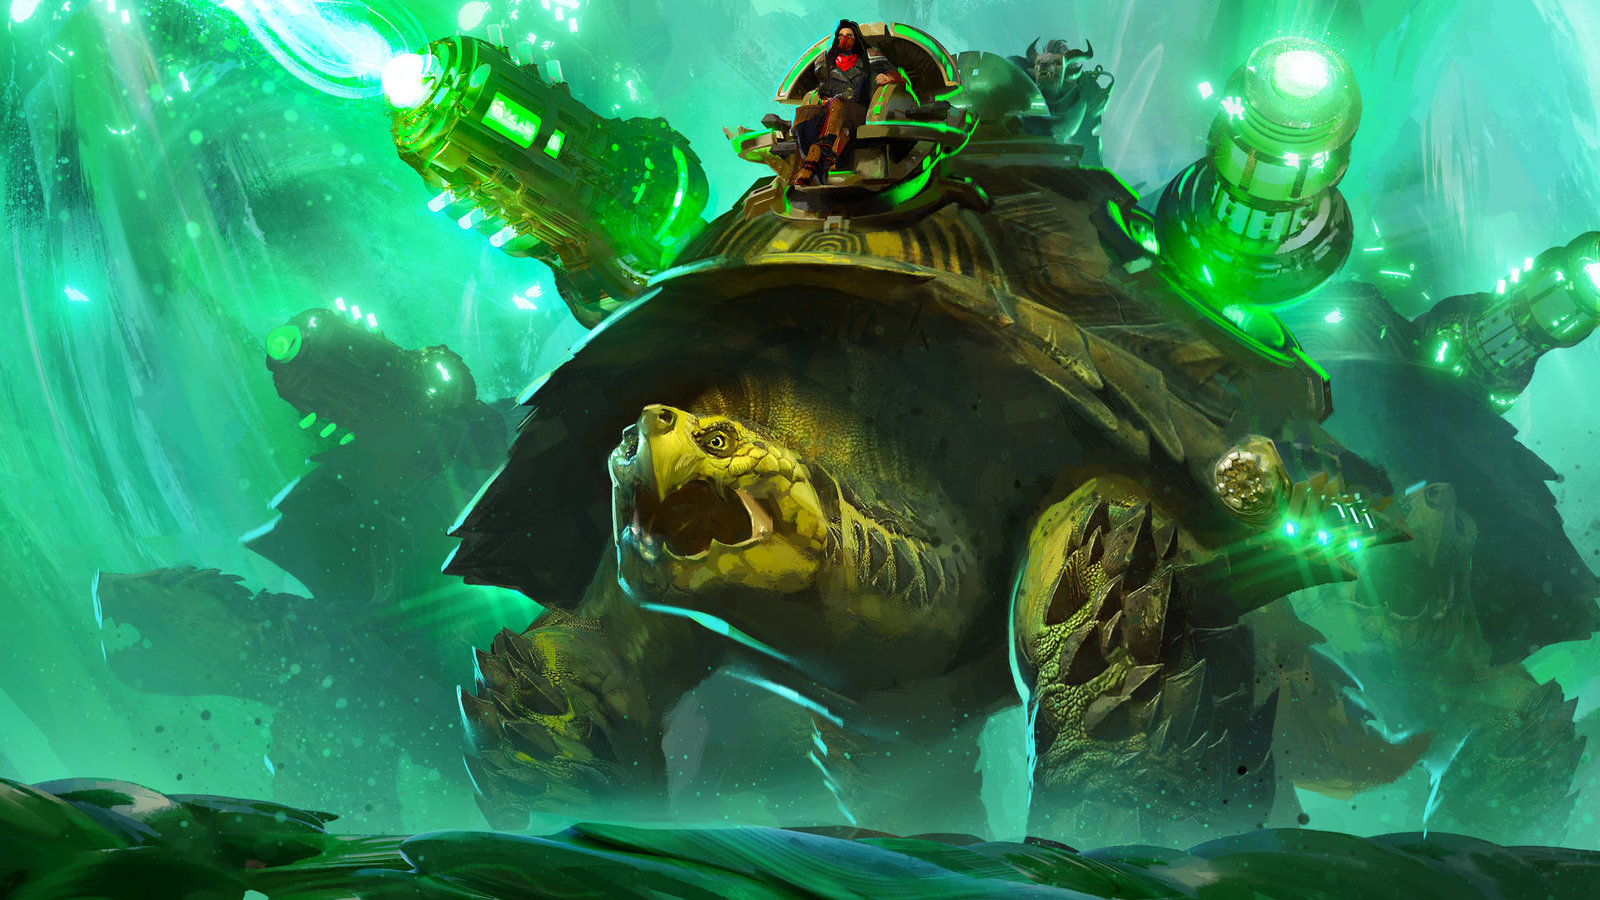 Giant Siege Turtles are coming as two-seater mounts for Guild Wars 2 End Of Dragons